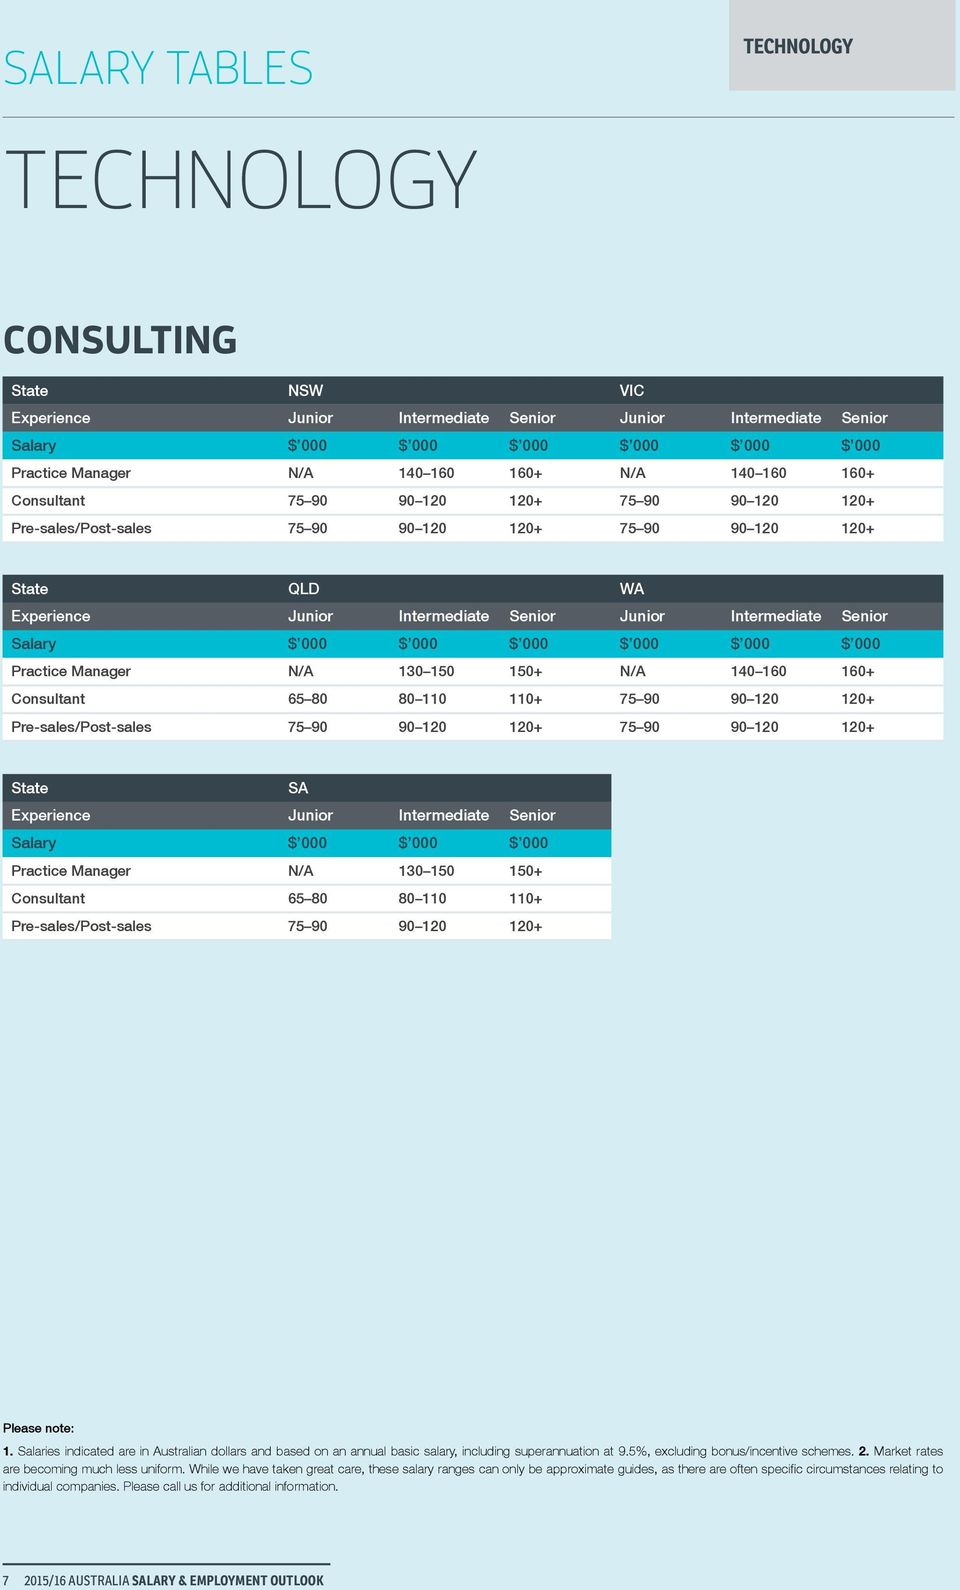 Consultant 65 80 80 110 110+ 75 90 90 120 120+ Pre-sales/Post-sales 75 90 90 120 120+ 75 90 90 120 120+ Practice Manager